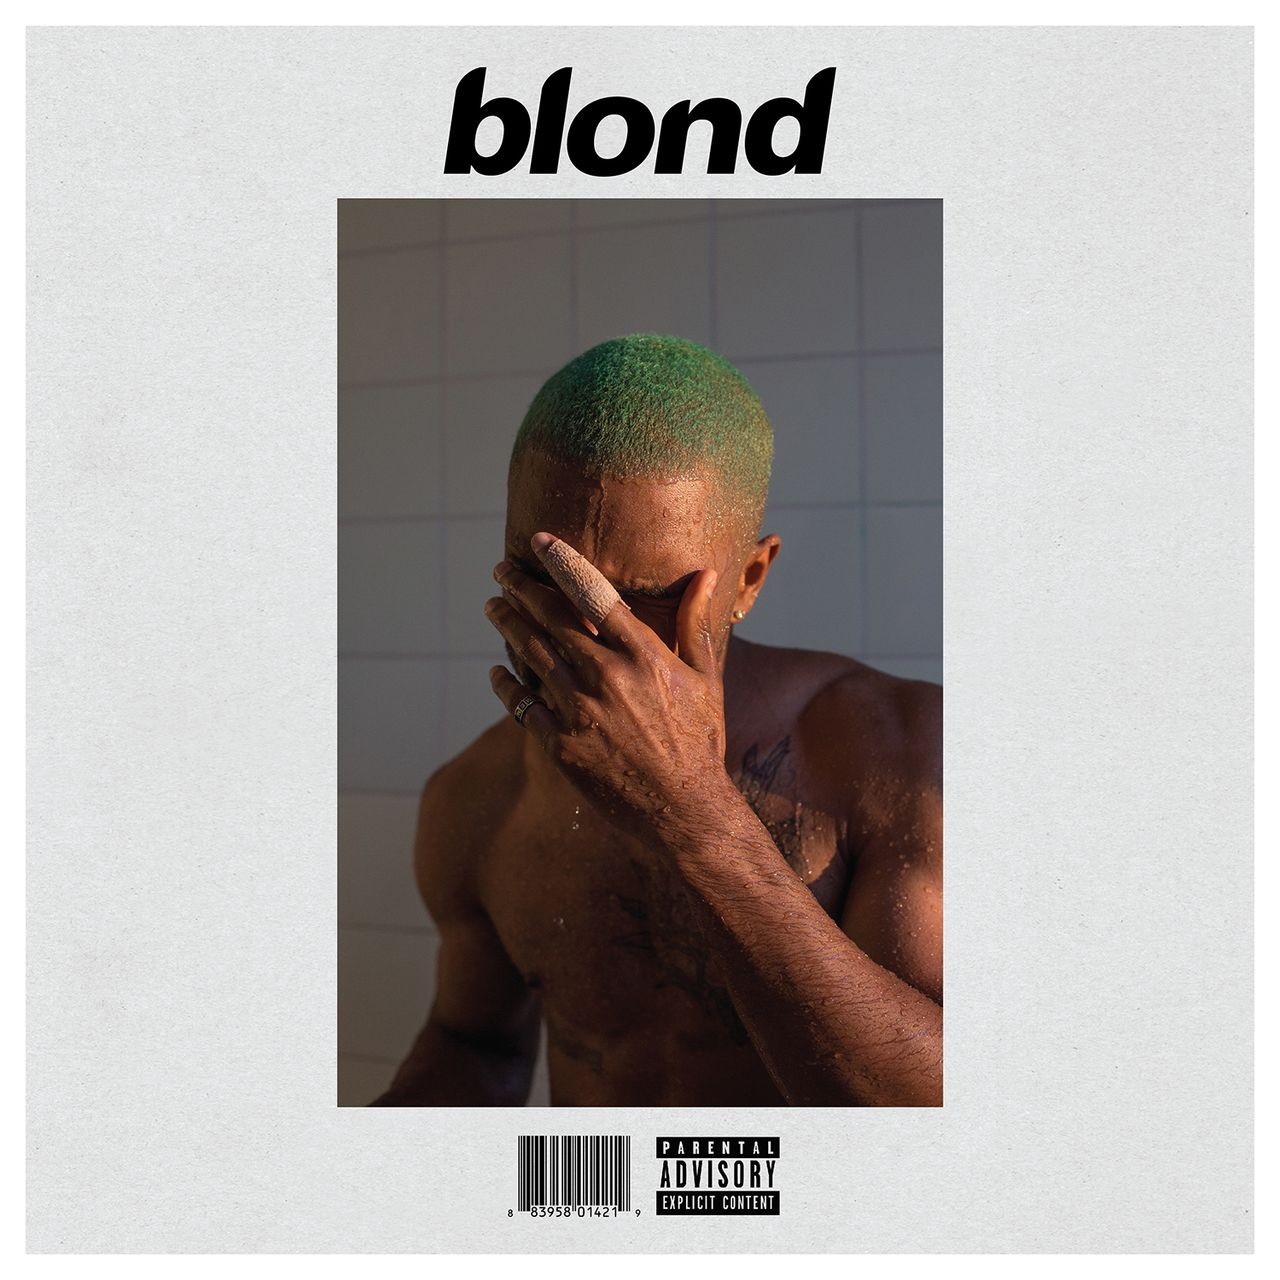 Frank Ocean Blonde Album Cover